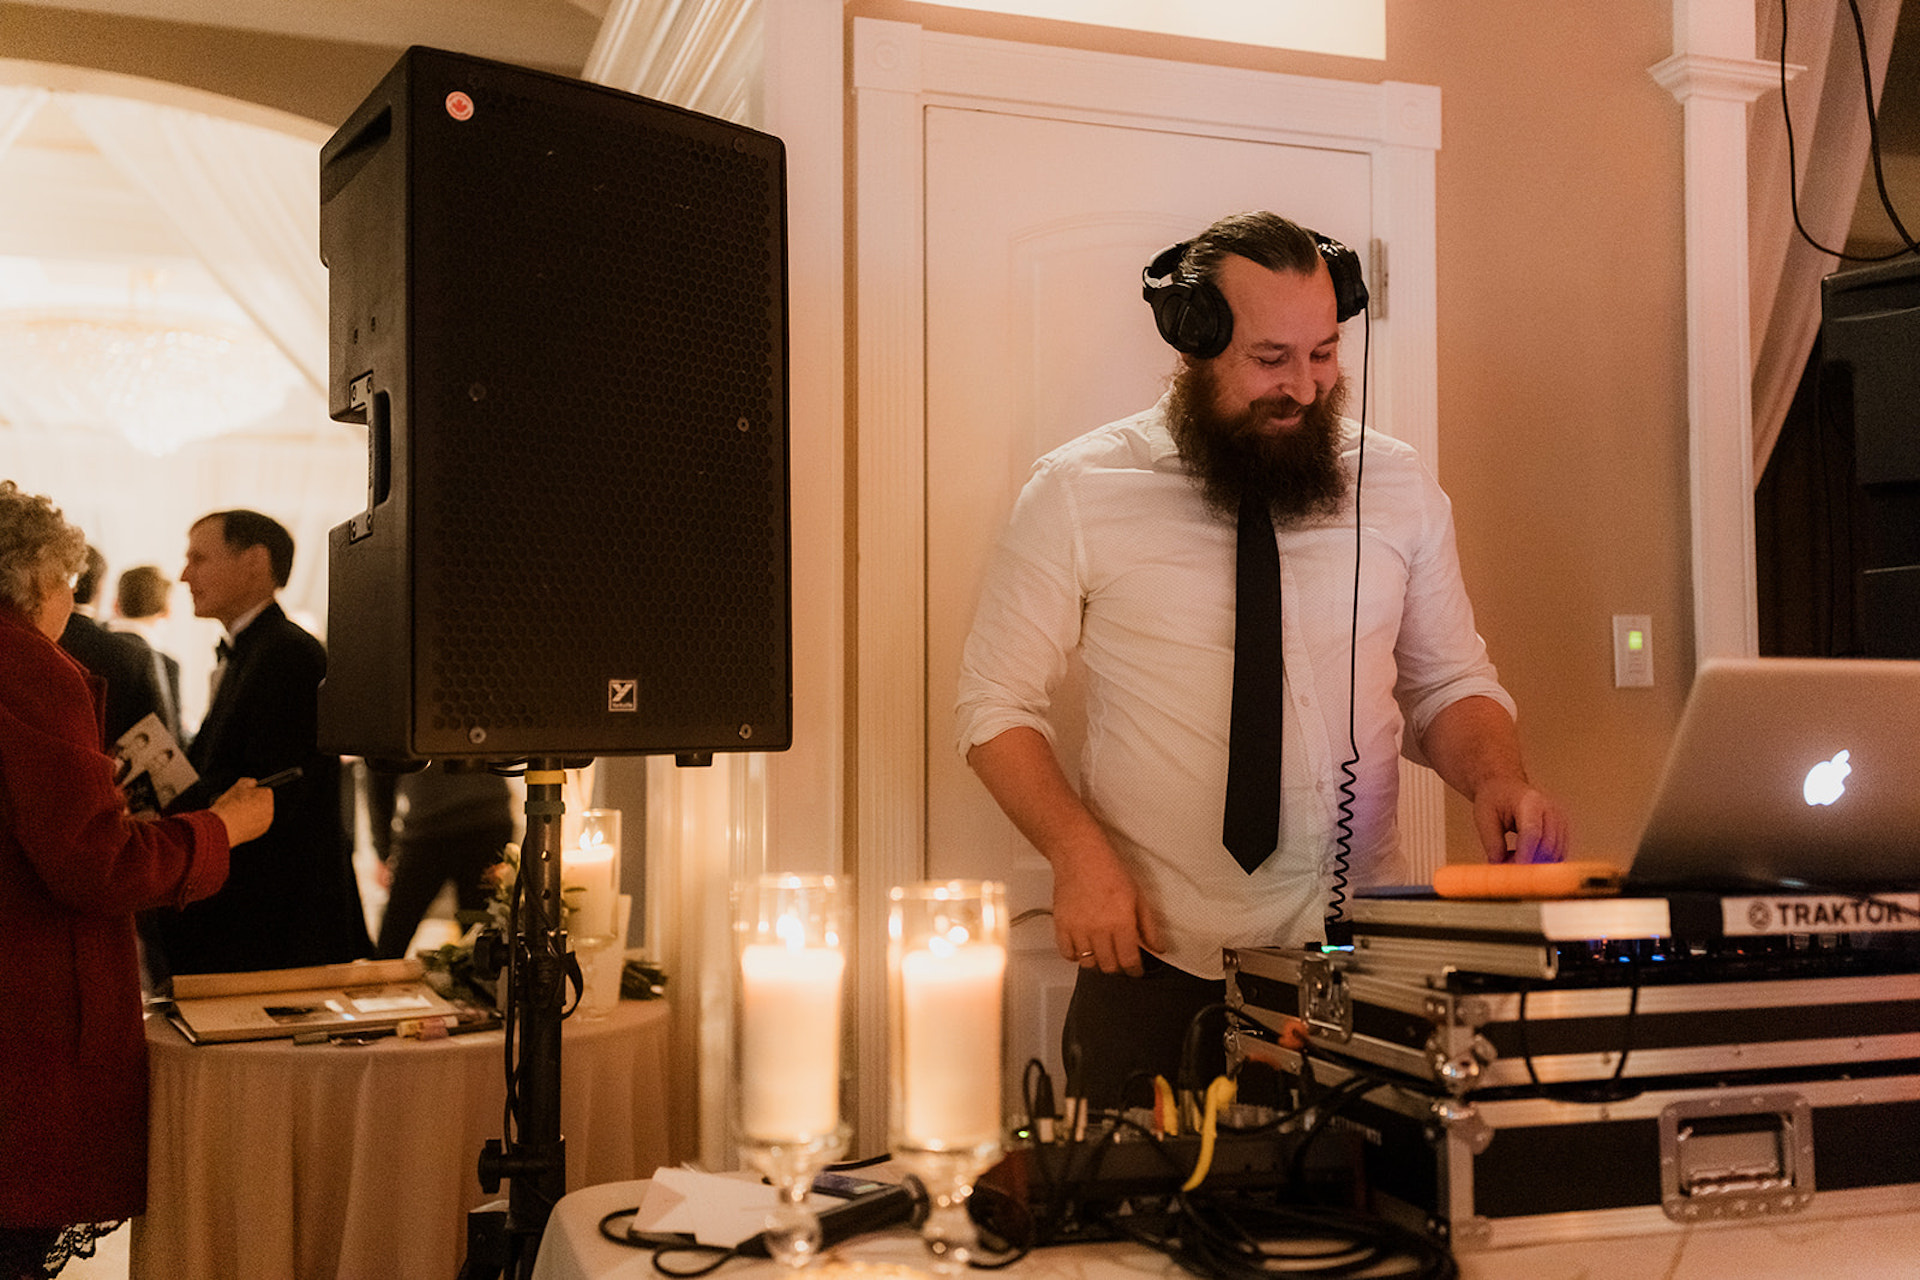 Victoria wedding DJ